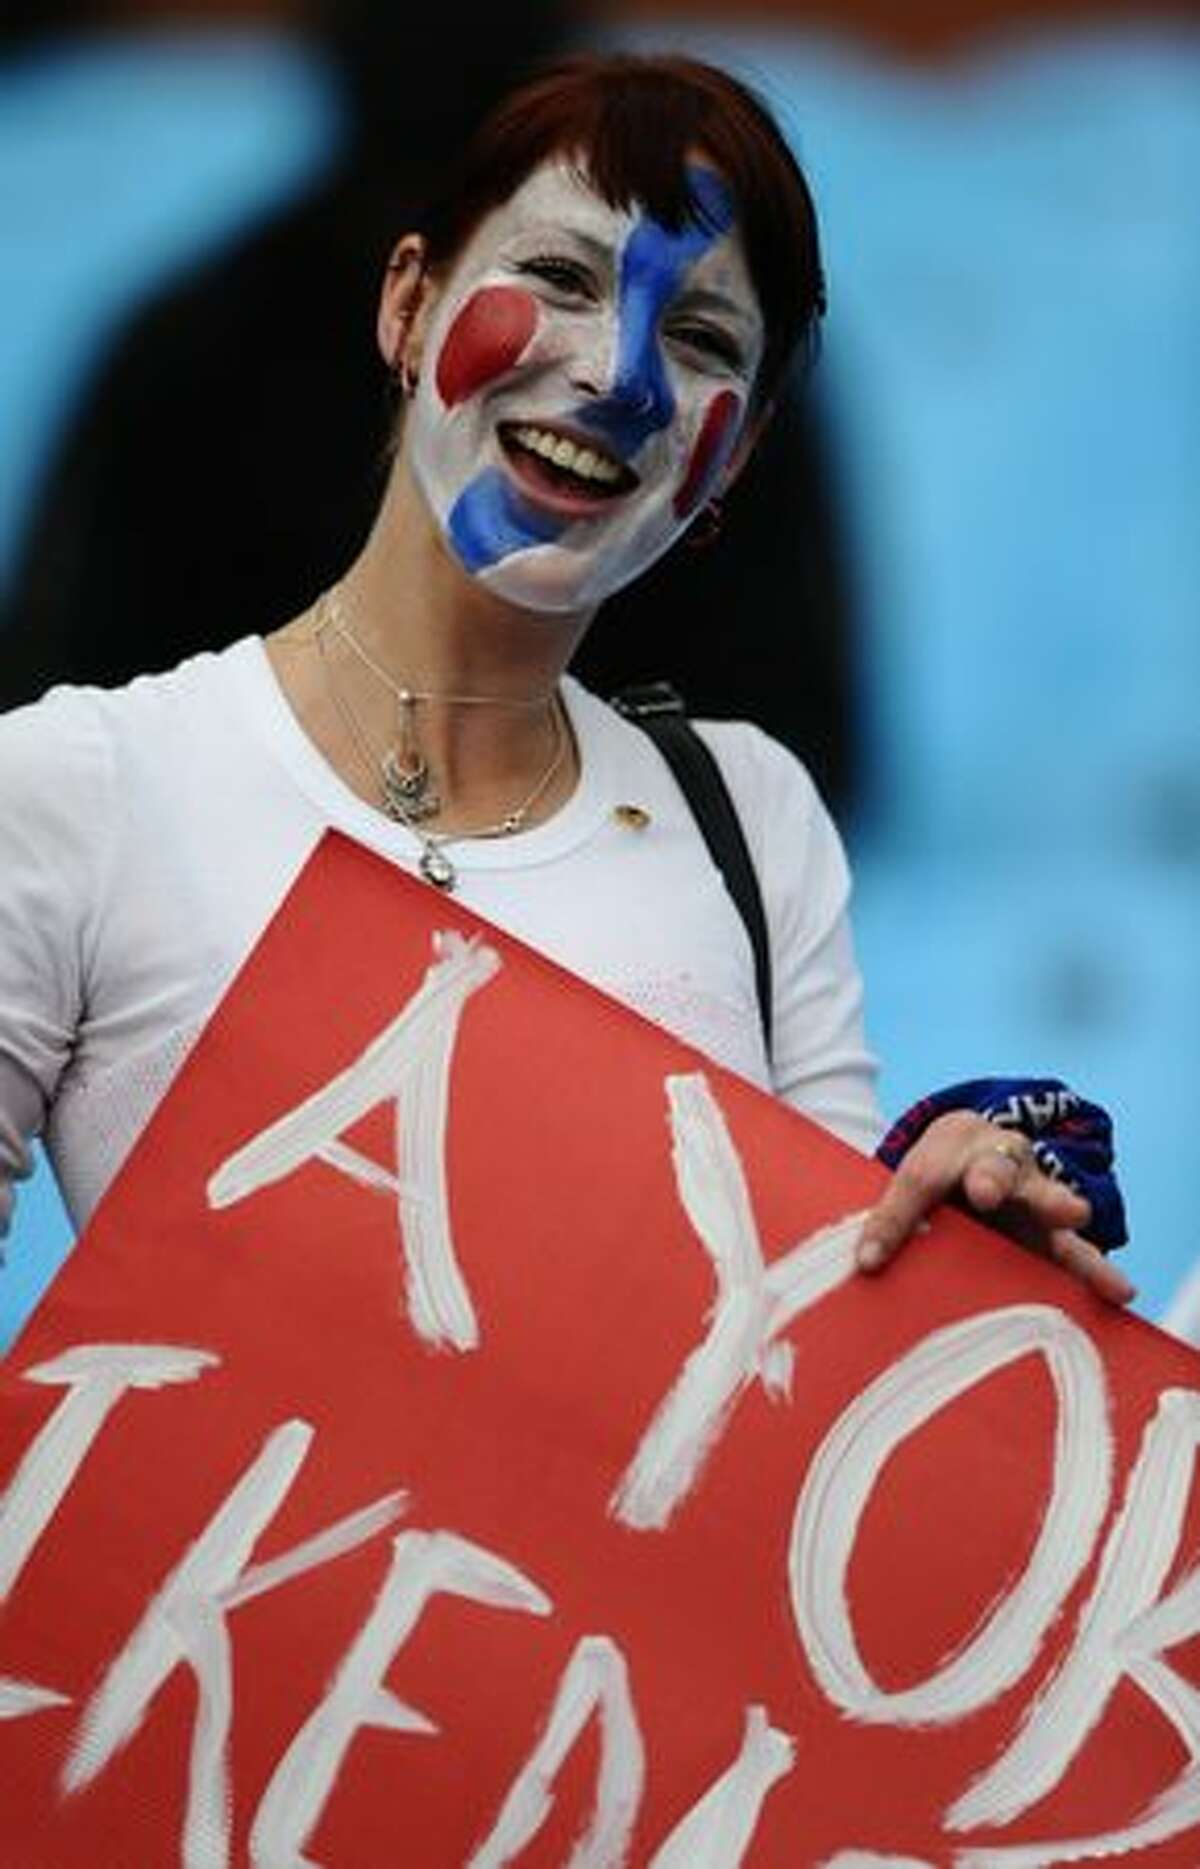 A Japan fan smiles before the 2010 World Cup round of 16 match Paraguay versus Japan on June 29, 2010 at Loftus Versfeld Stadium in Pretoria.